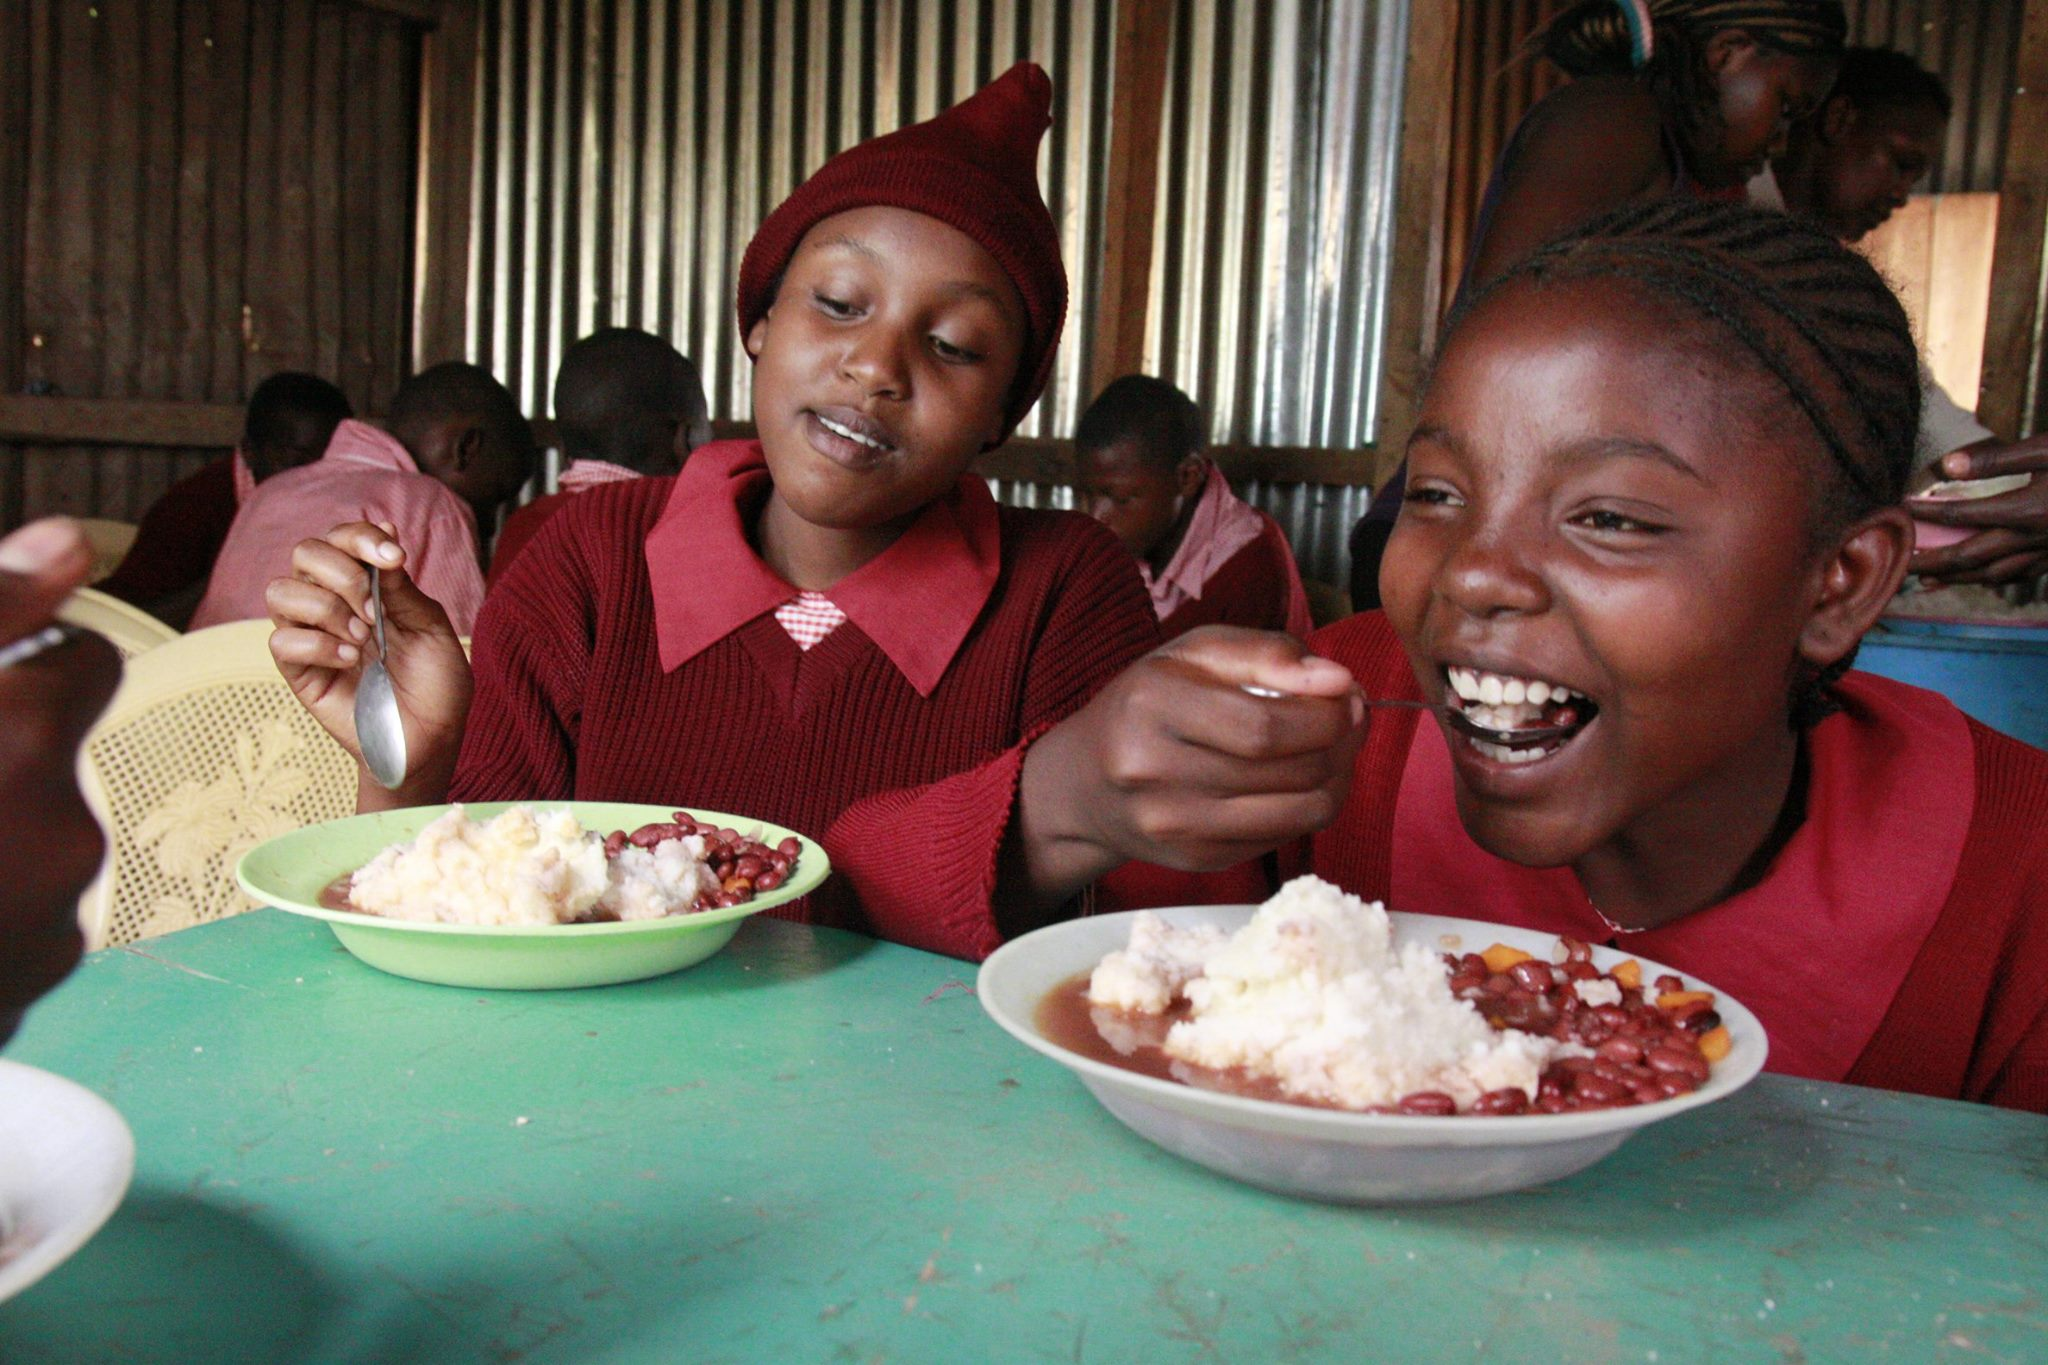 Photo courtesy of Food 4 Education